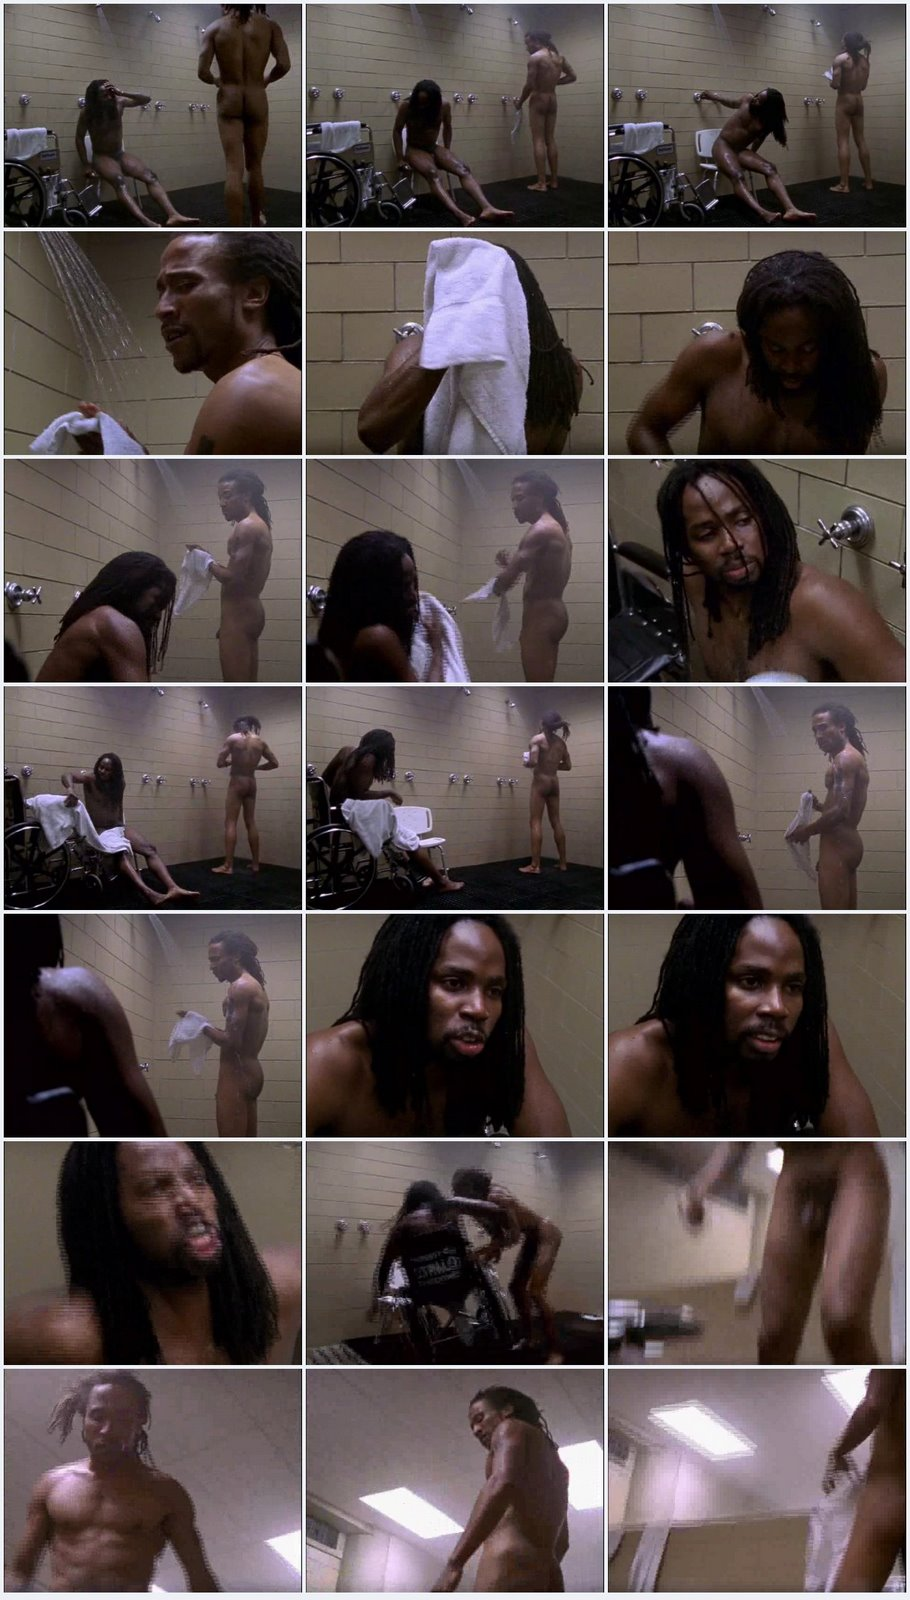 Harold Perrineau nude 01 Harrold Perrineau is one of the feautures for this week on Black Celebs ...